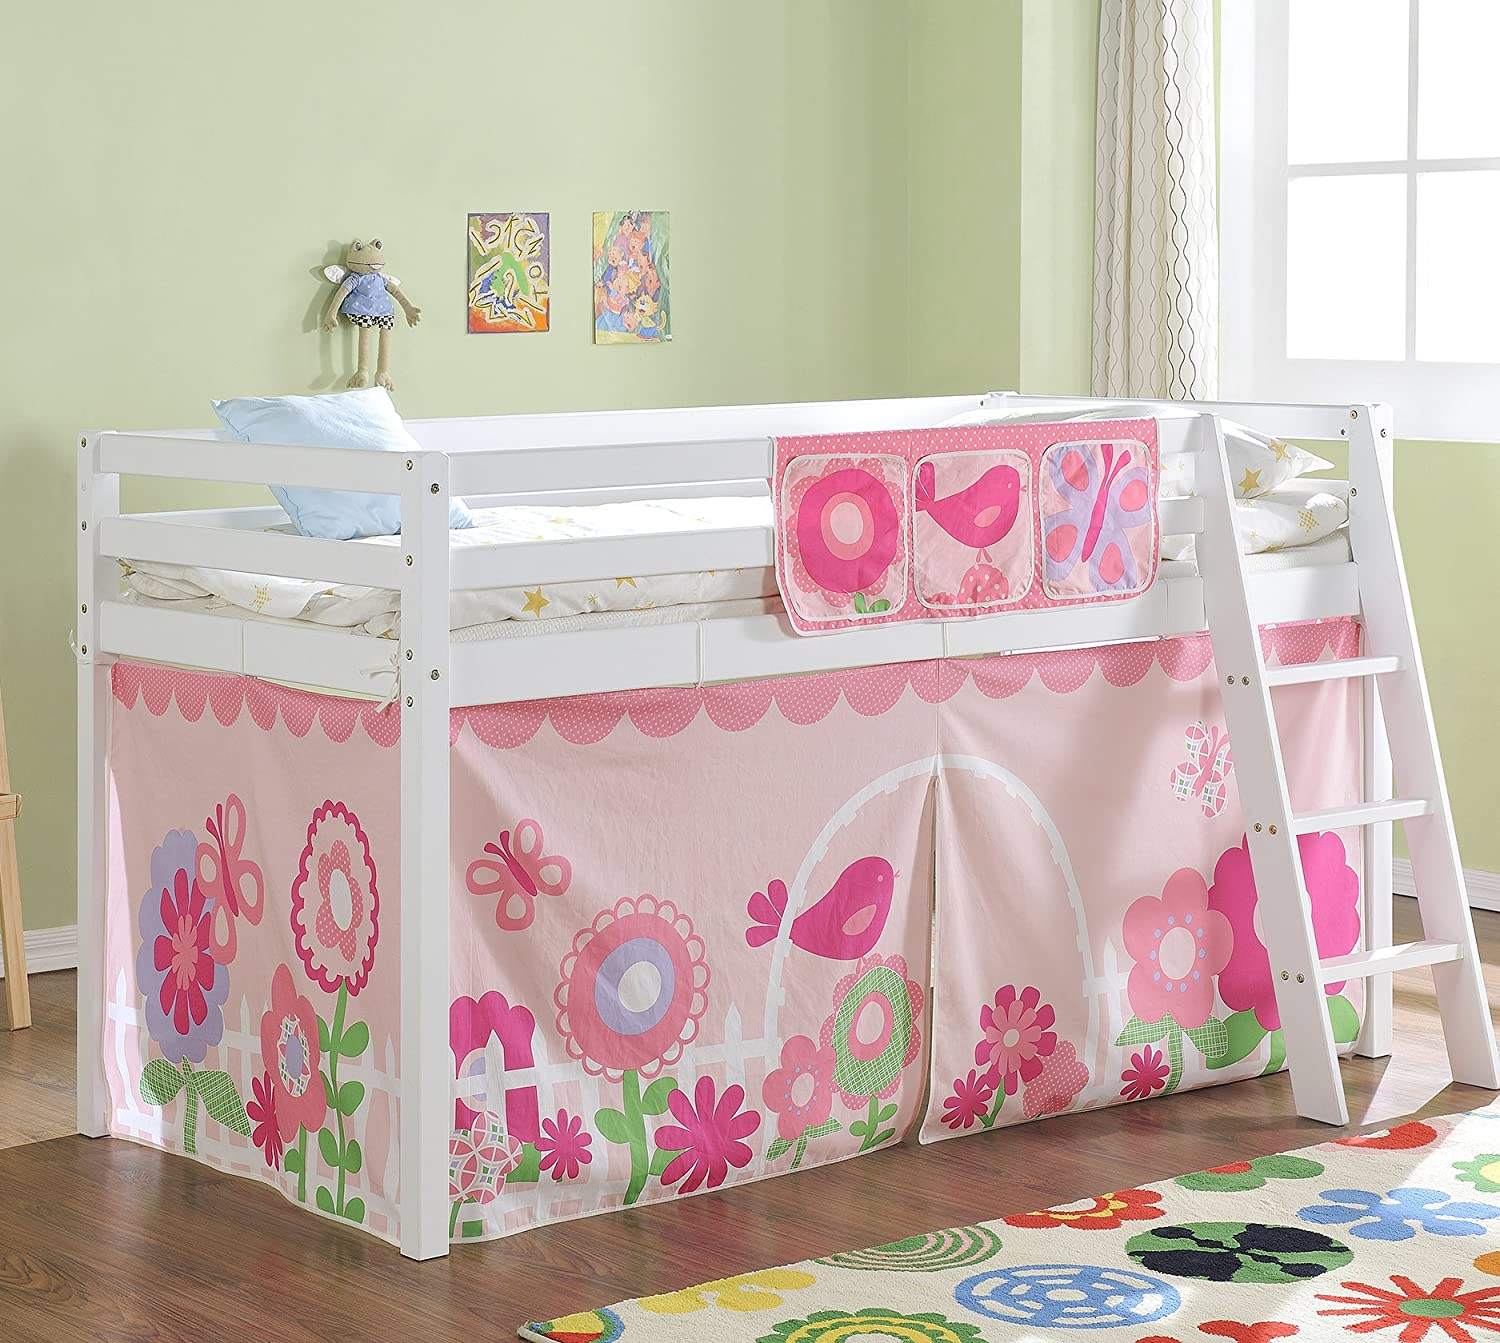 Noa And Nani Cabin Bed Mid Sleeper In White With Tent FLORAL 578WG Amazoncouk Kitchen Home